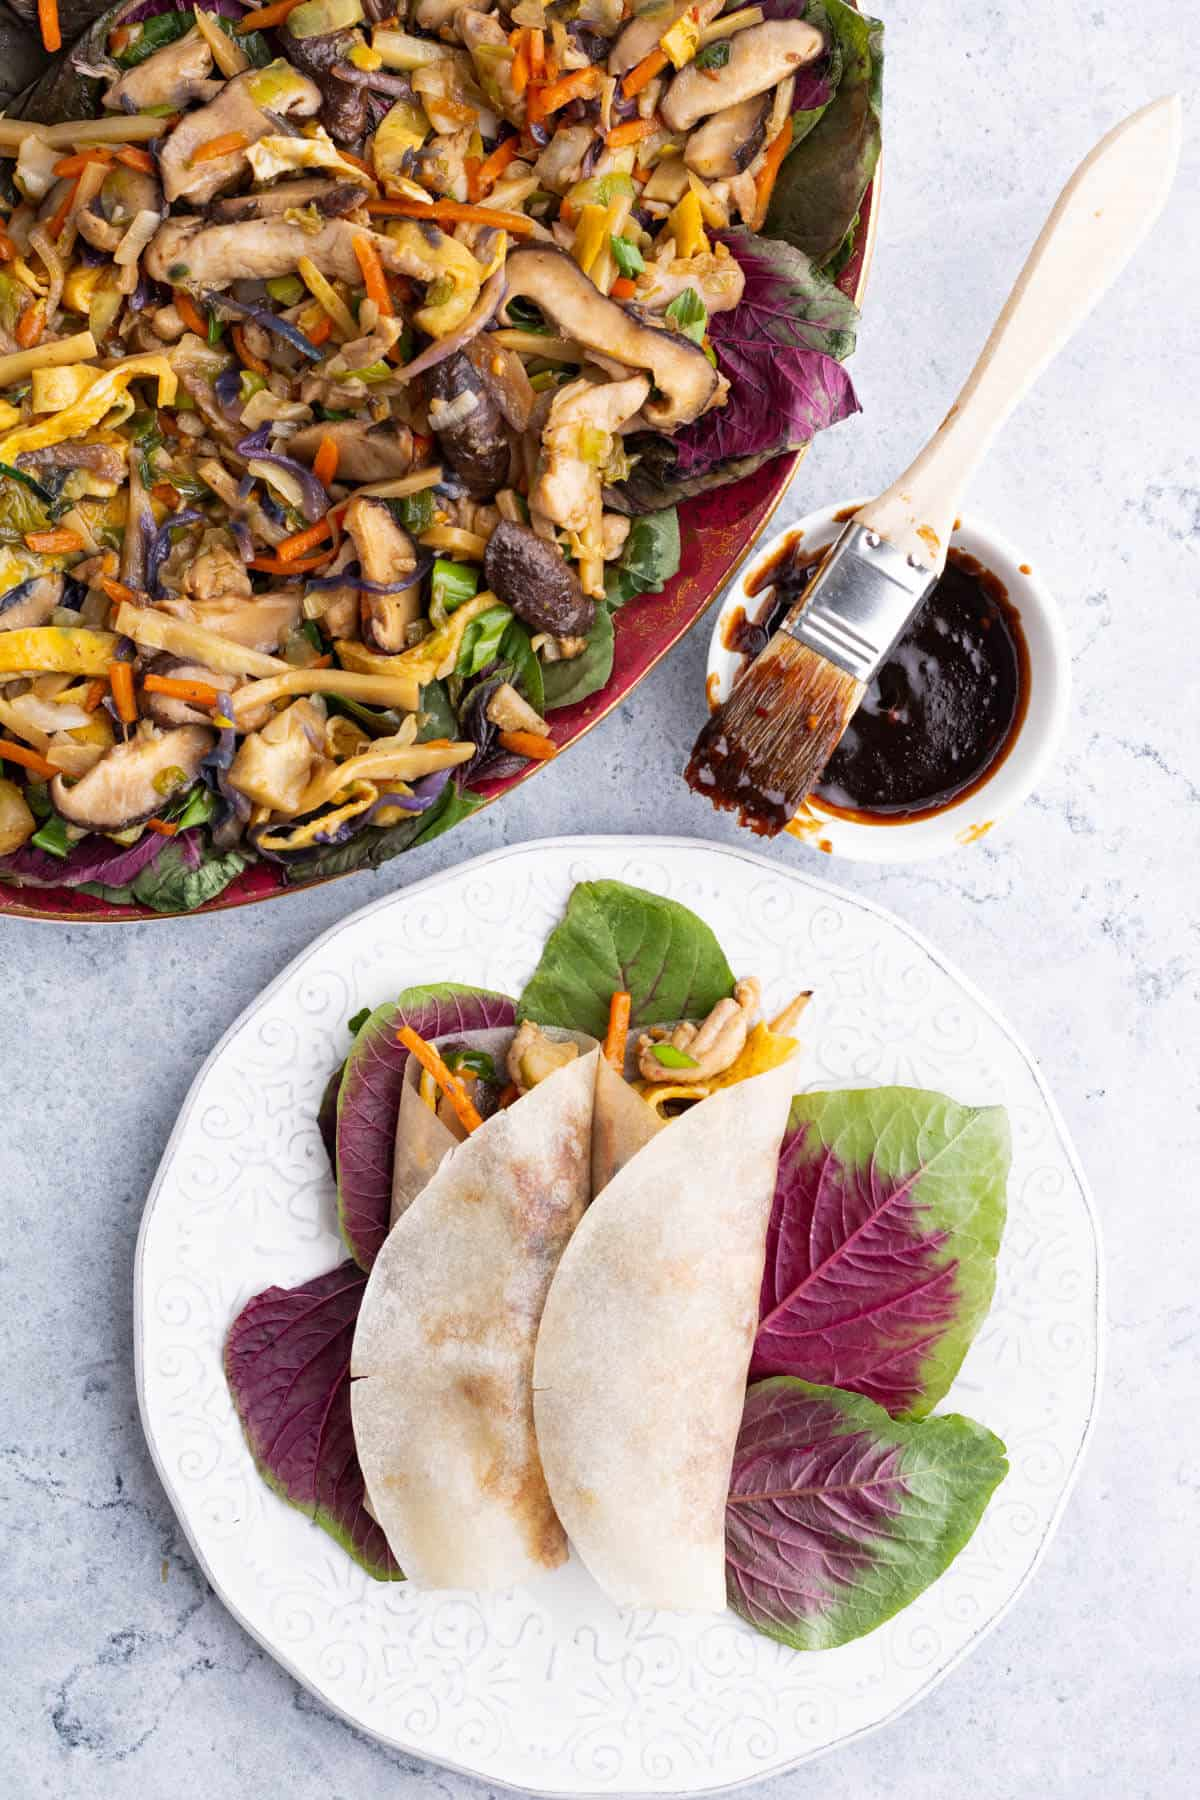 A platter full of colourful Moo Shu Chicken and two filled and rolled pancakes.